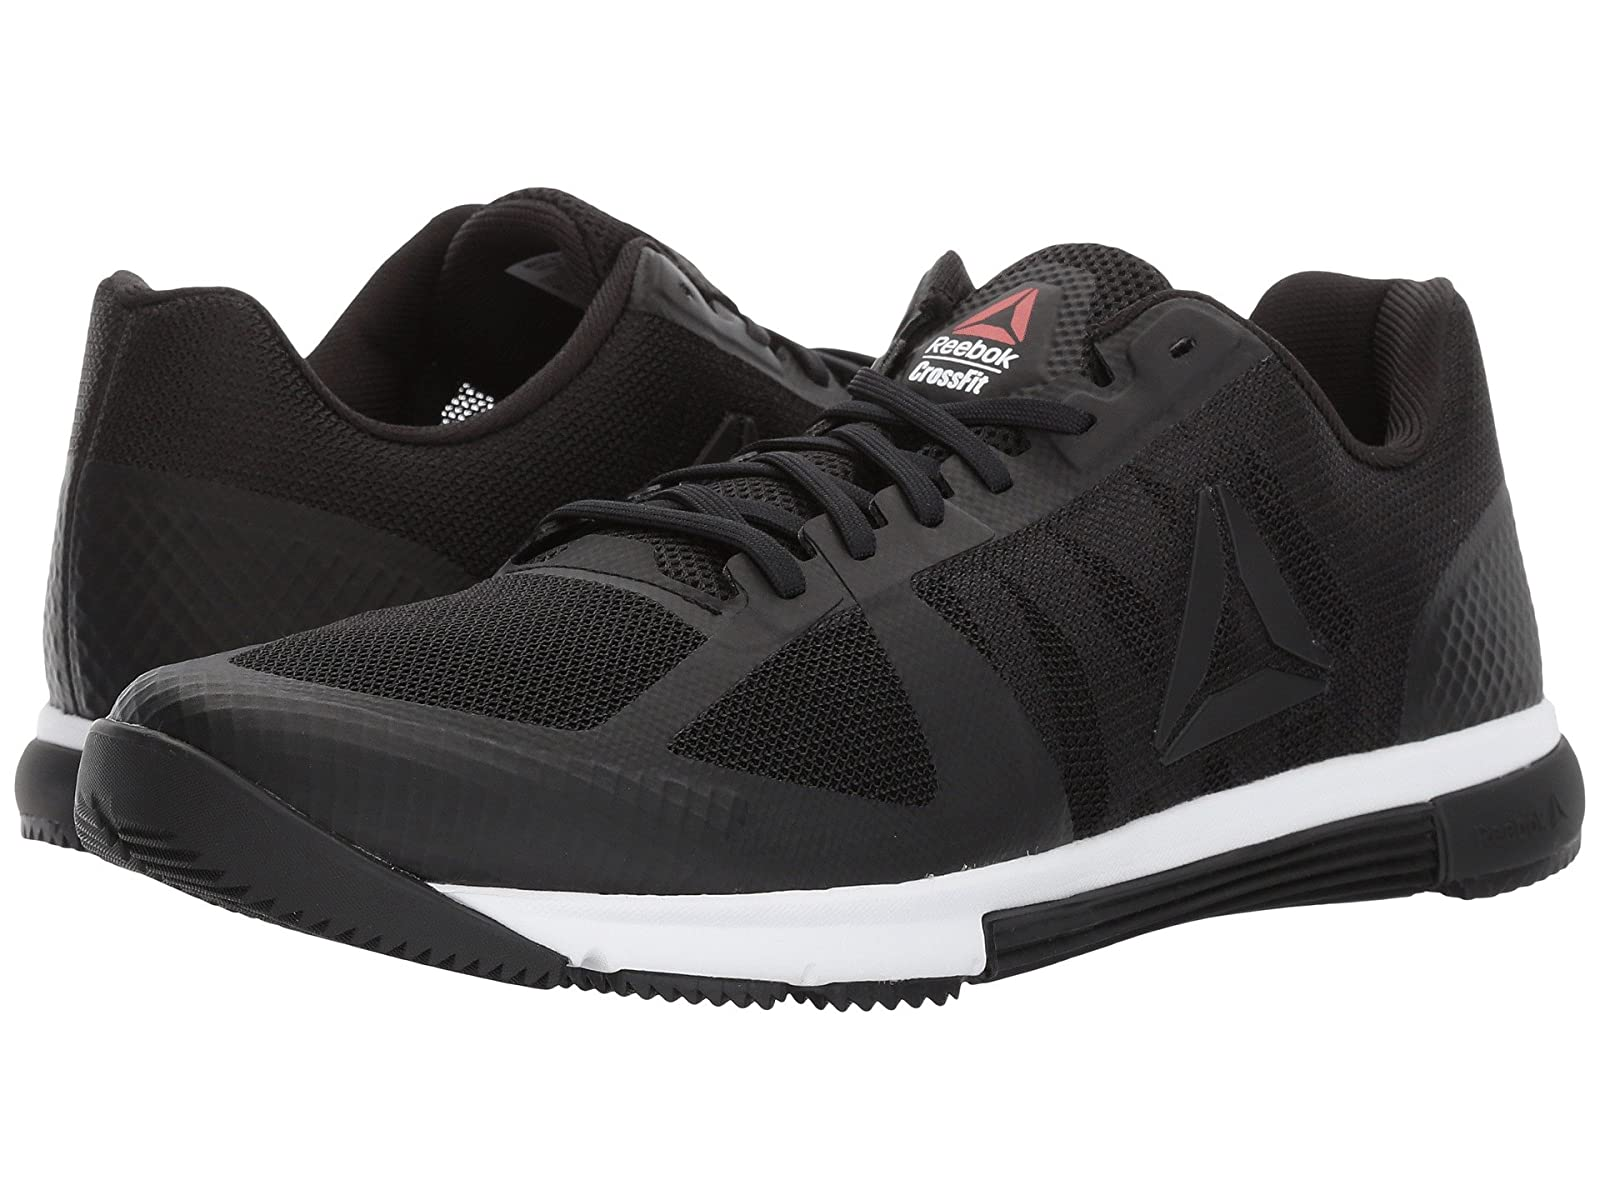 Reebok CrossFit® Speed TR 2.0Atmospheric grades have affordable shoes